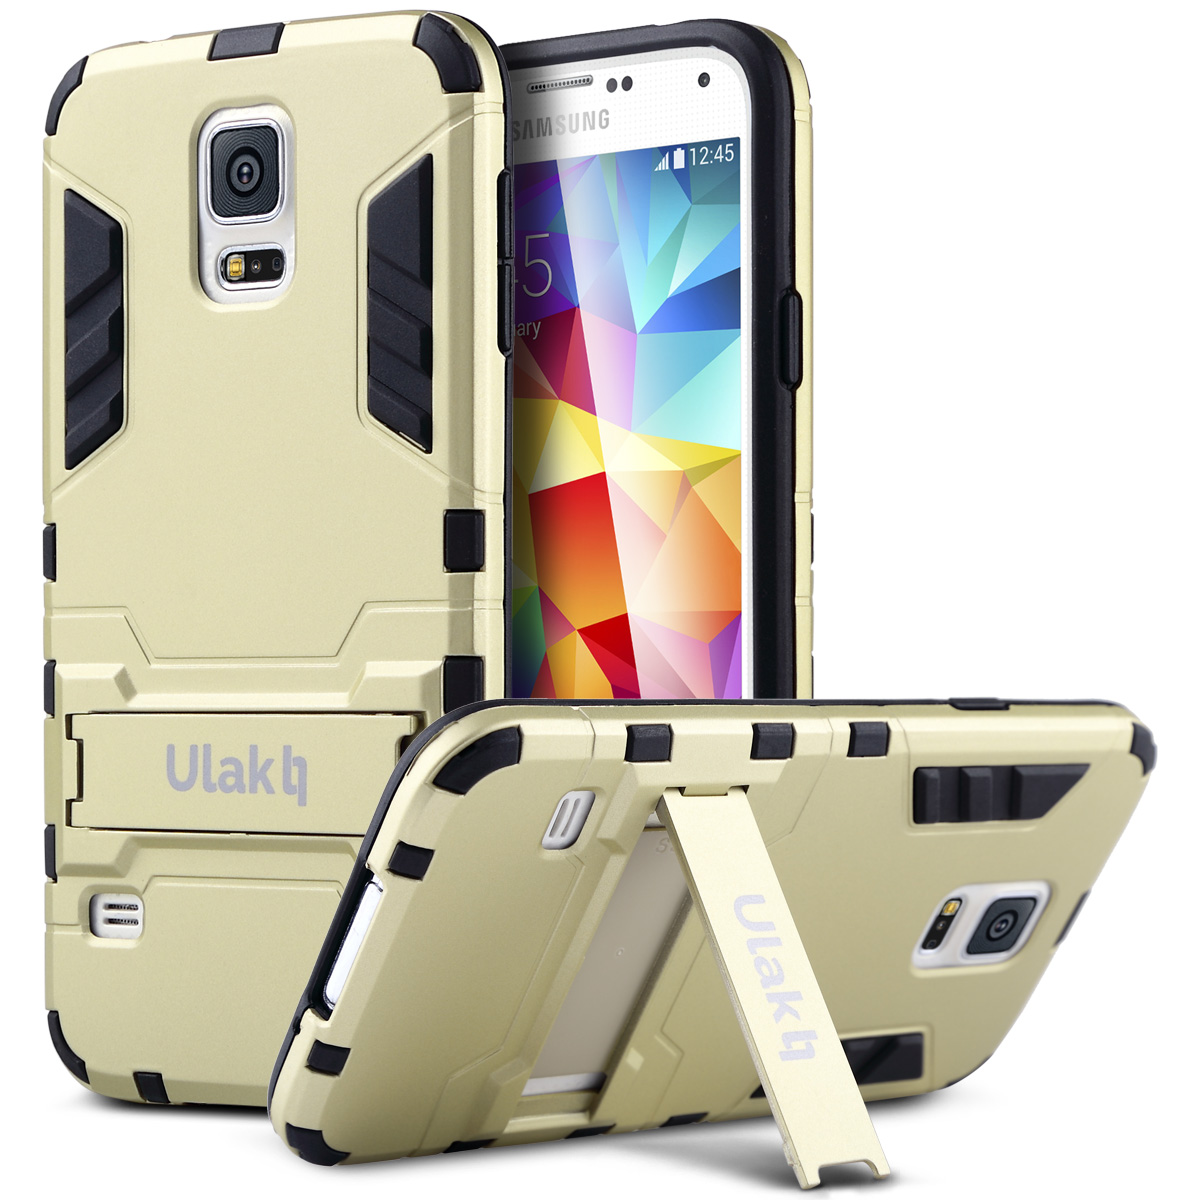 ULAK Galaxy S5 Case, Dual Layer Impact Heavy Duty Slim Kickstand Bumper Case Hybrid Protective Cover For Samsung Galaxy S5 (Champaign Gold)